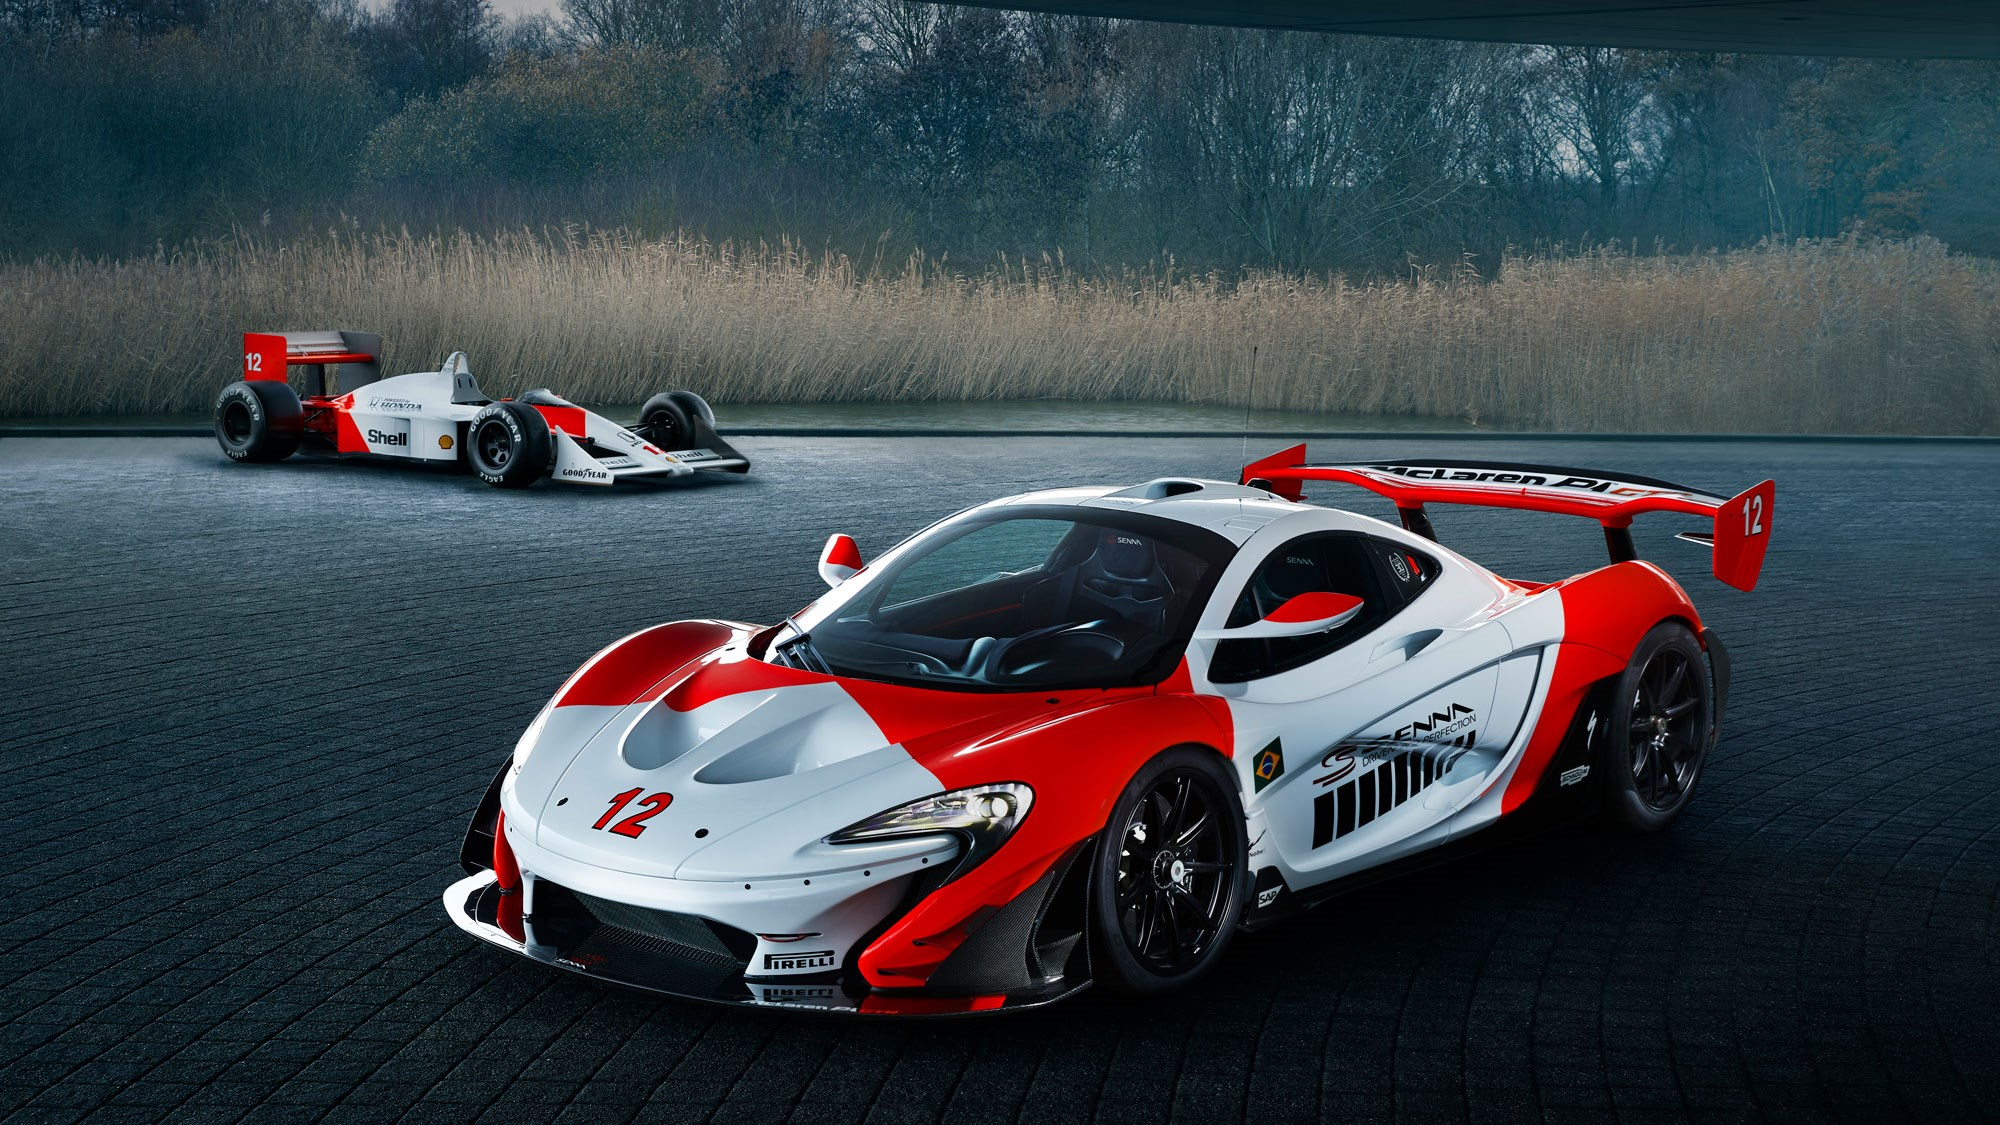 McLaren P1 GTR by MSO pays homage to Senna's first F1 championship